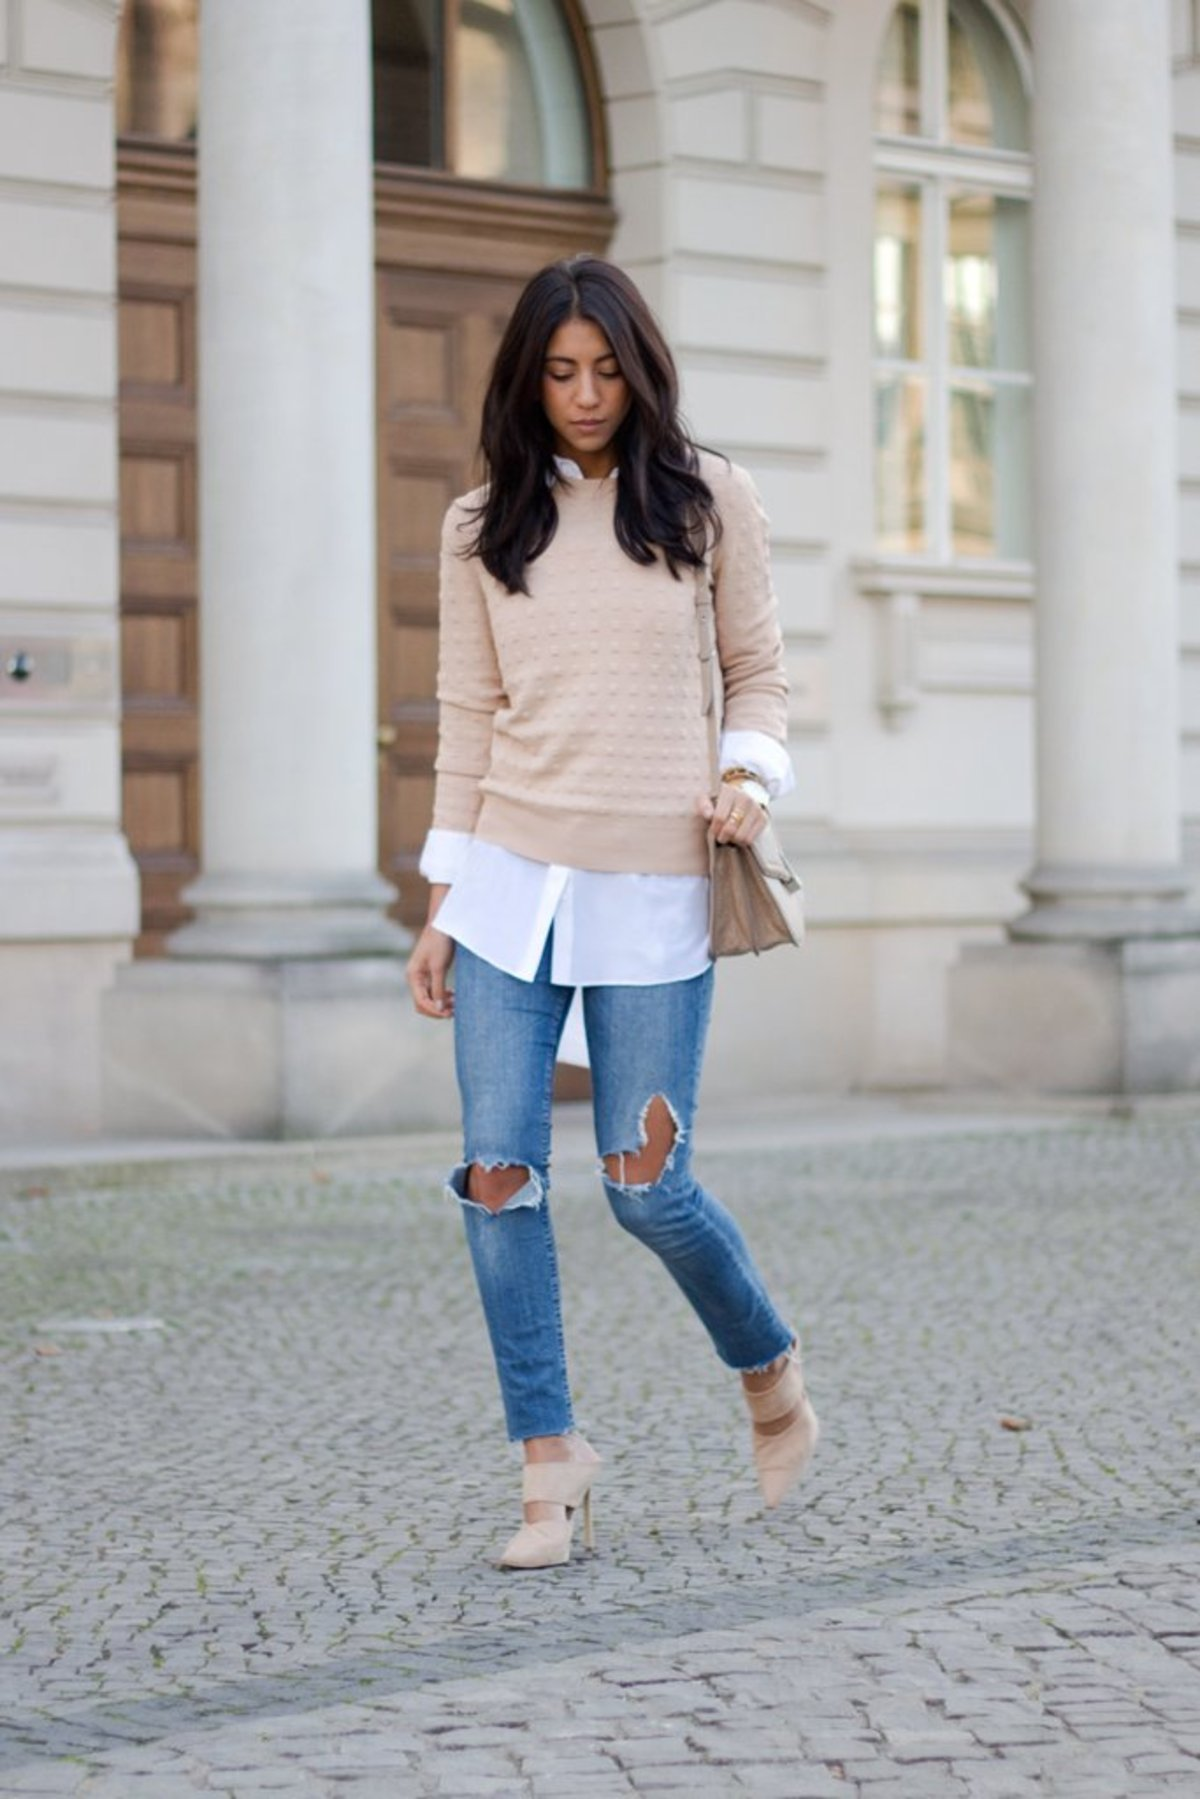 blush-sweater-layered-over-white-shirt-jeans-matching-heels